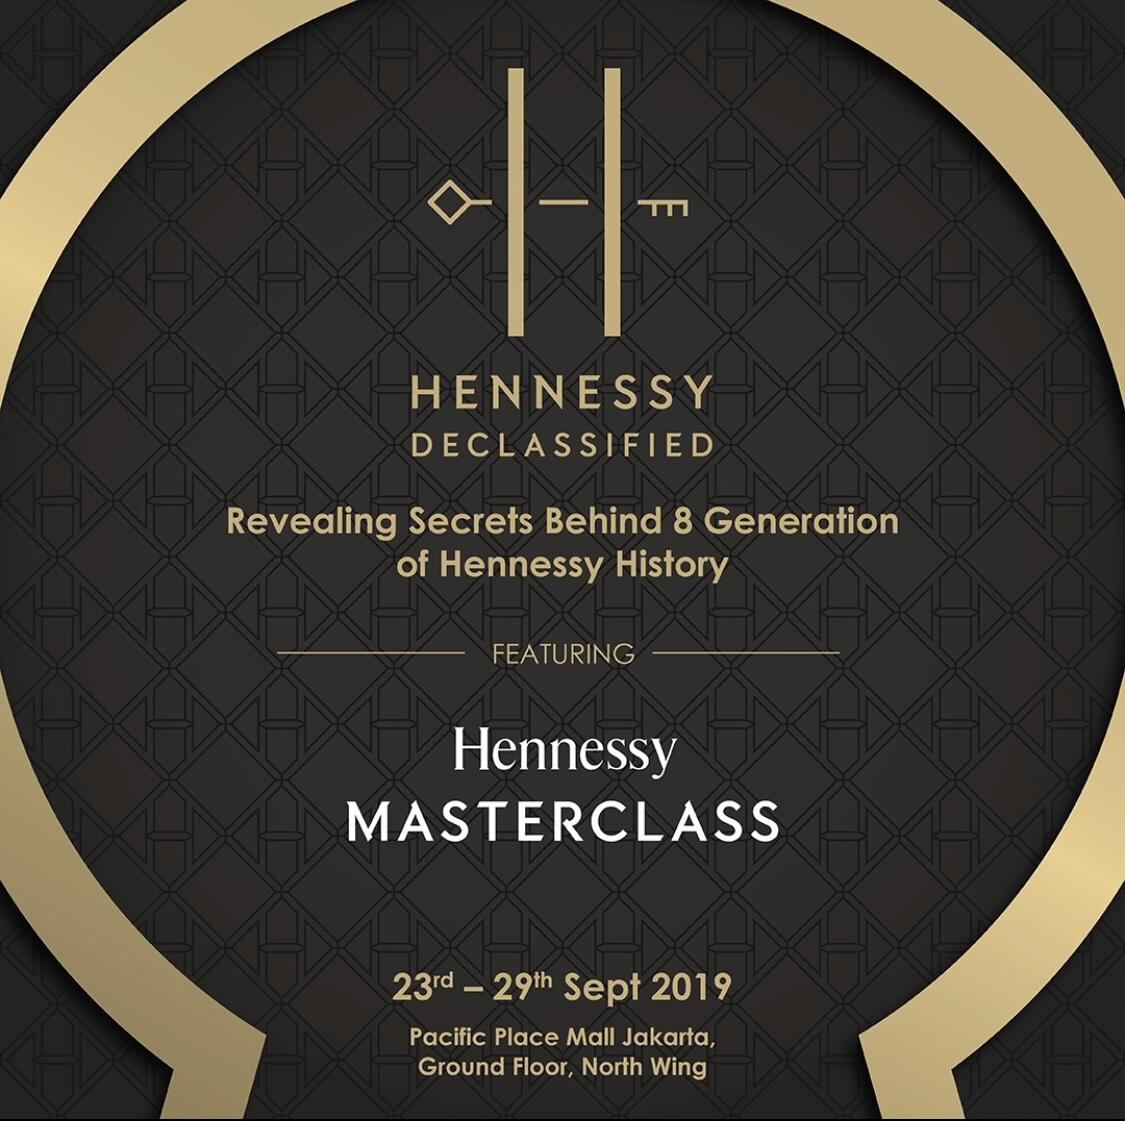 The Highlights of Hennessy Masterclass 2019